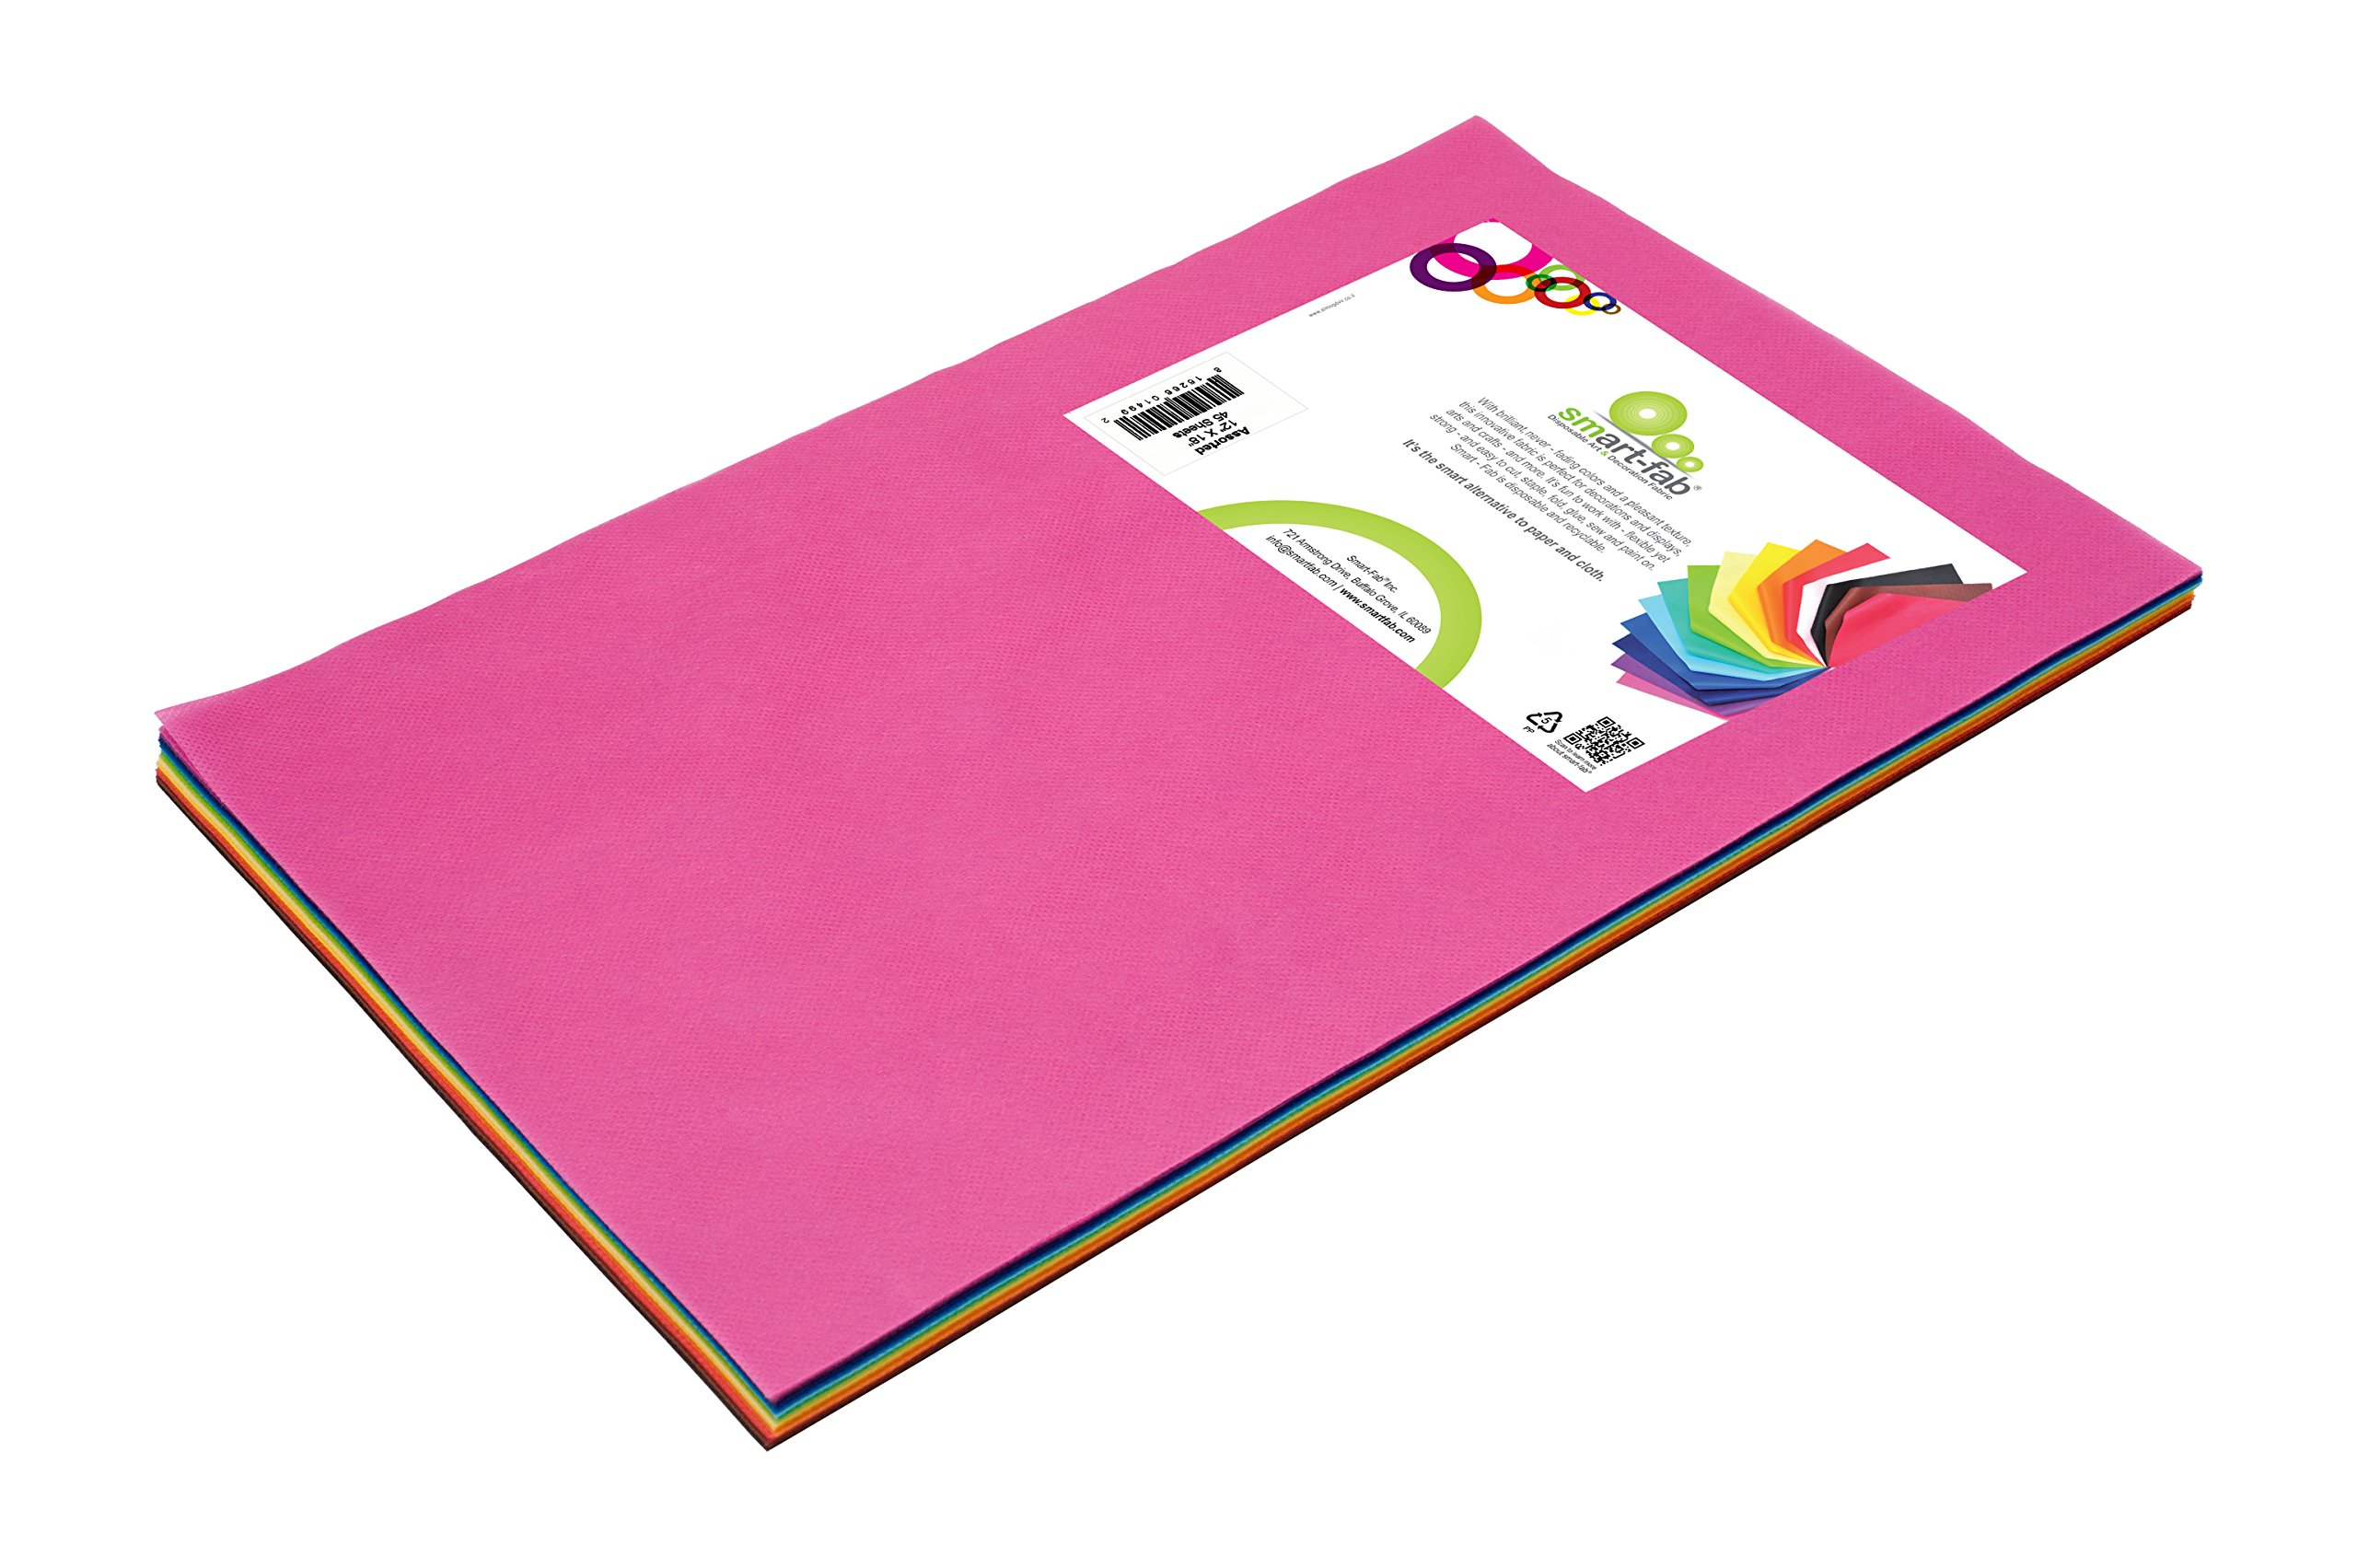 """Smart-Fab Disposable Classroom Fabric Sheets for Arts & Crafts - Cut, Glue, Draw, Staple like Construction Paper, 45 Sheets, 12""""x18"""", Assorted Colors"""